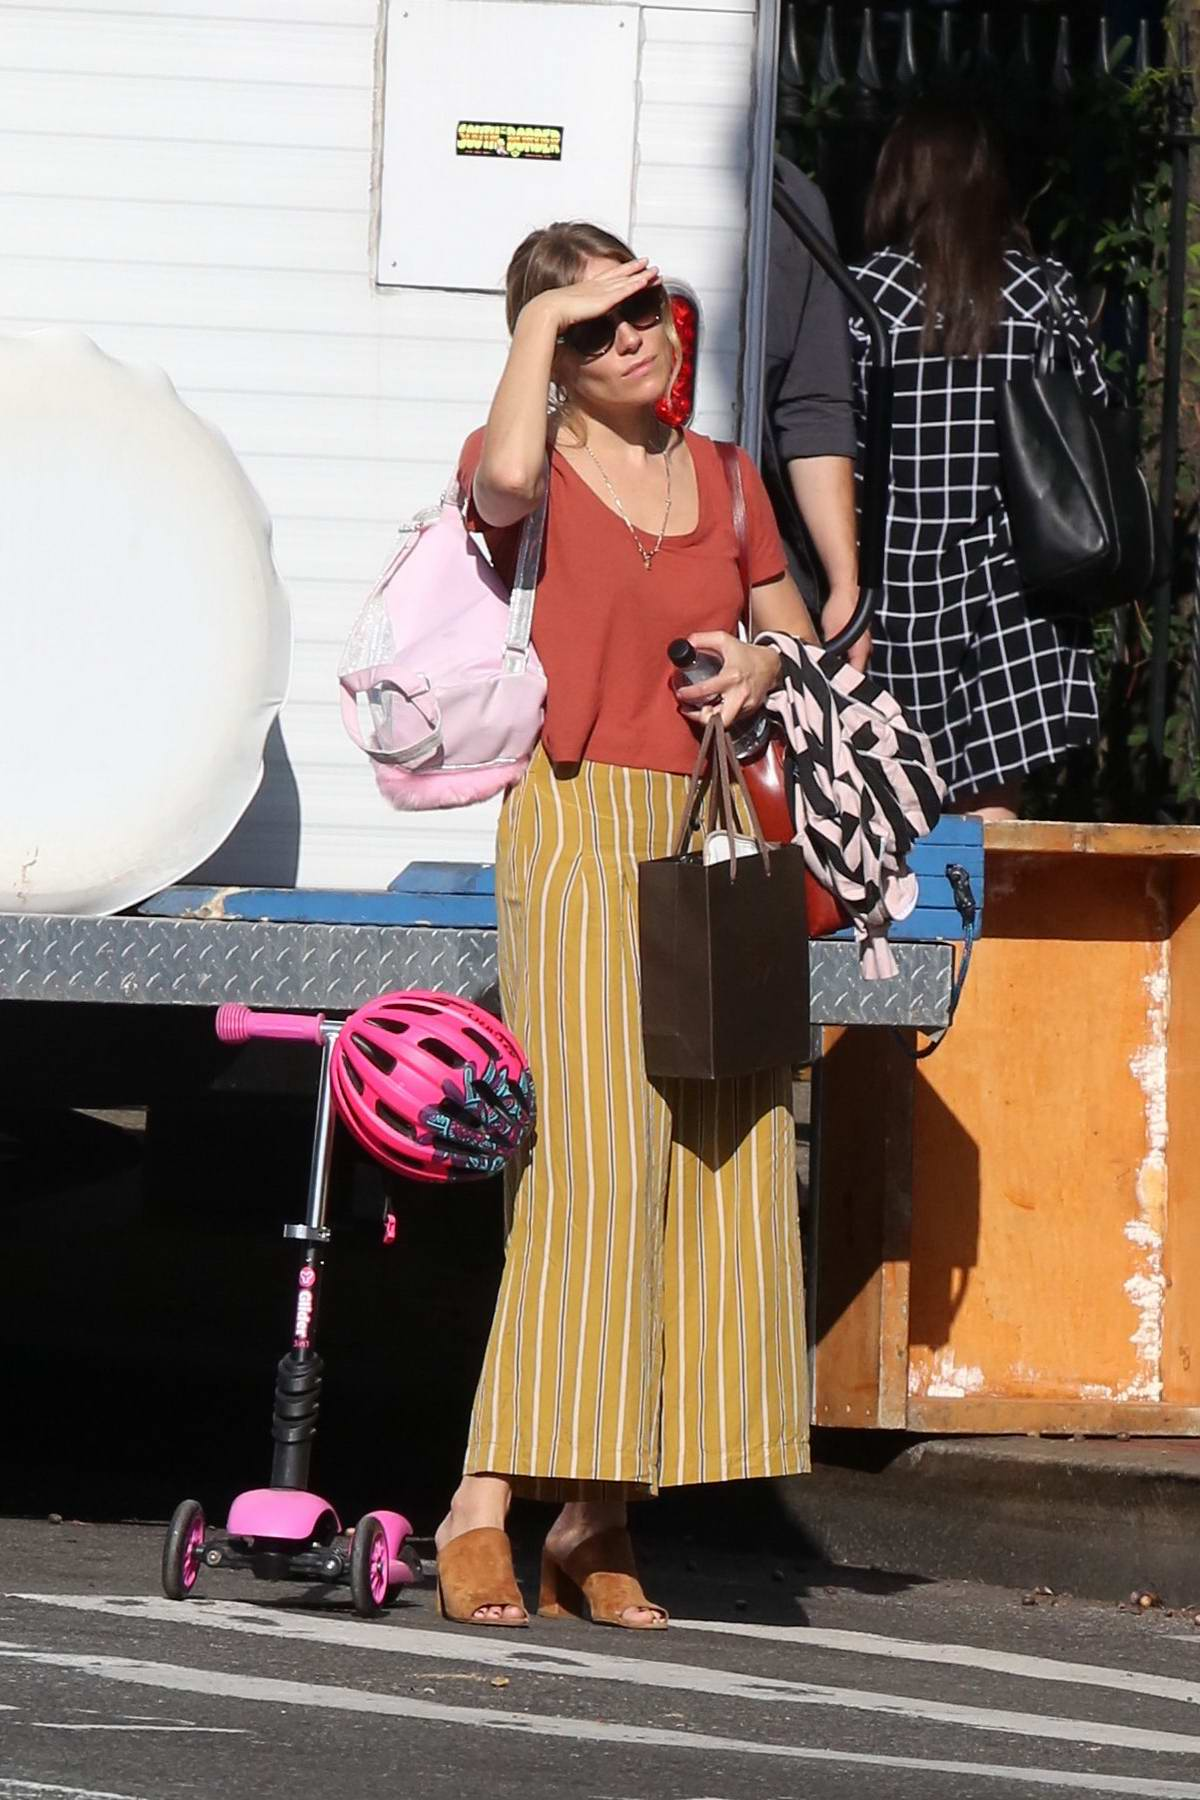 Sienna Miller spotted hailing a cab as she picks up her daughter from school in the West Village, New York City